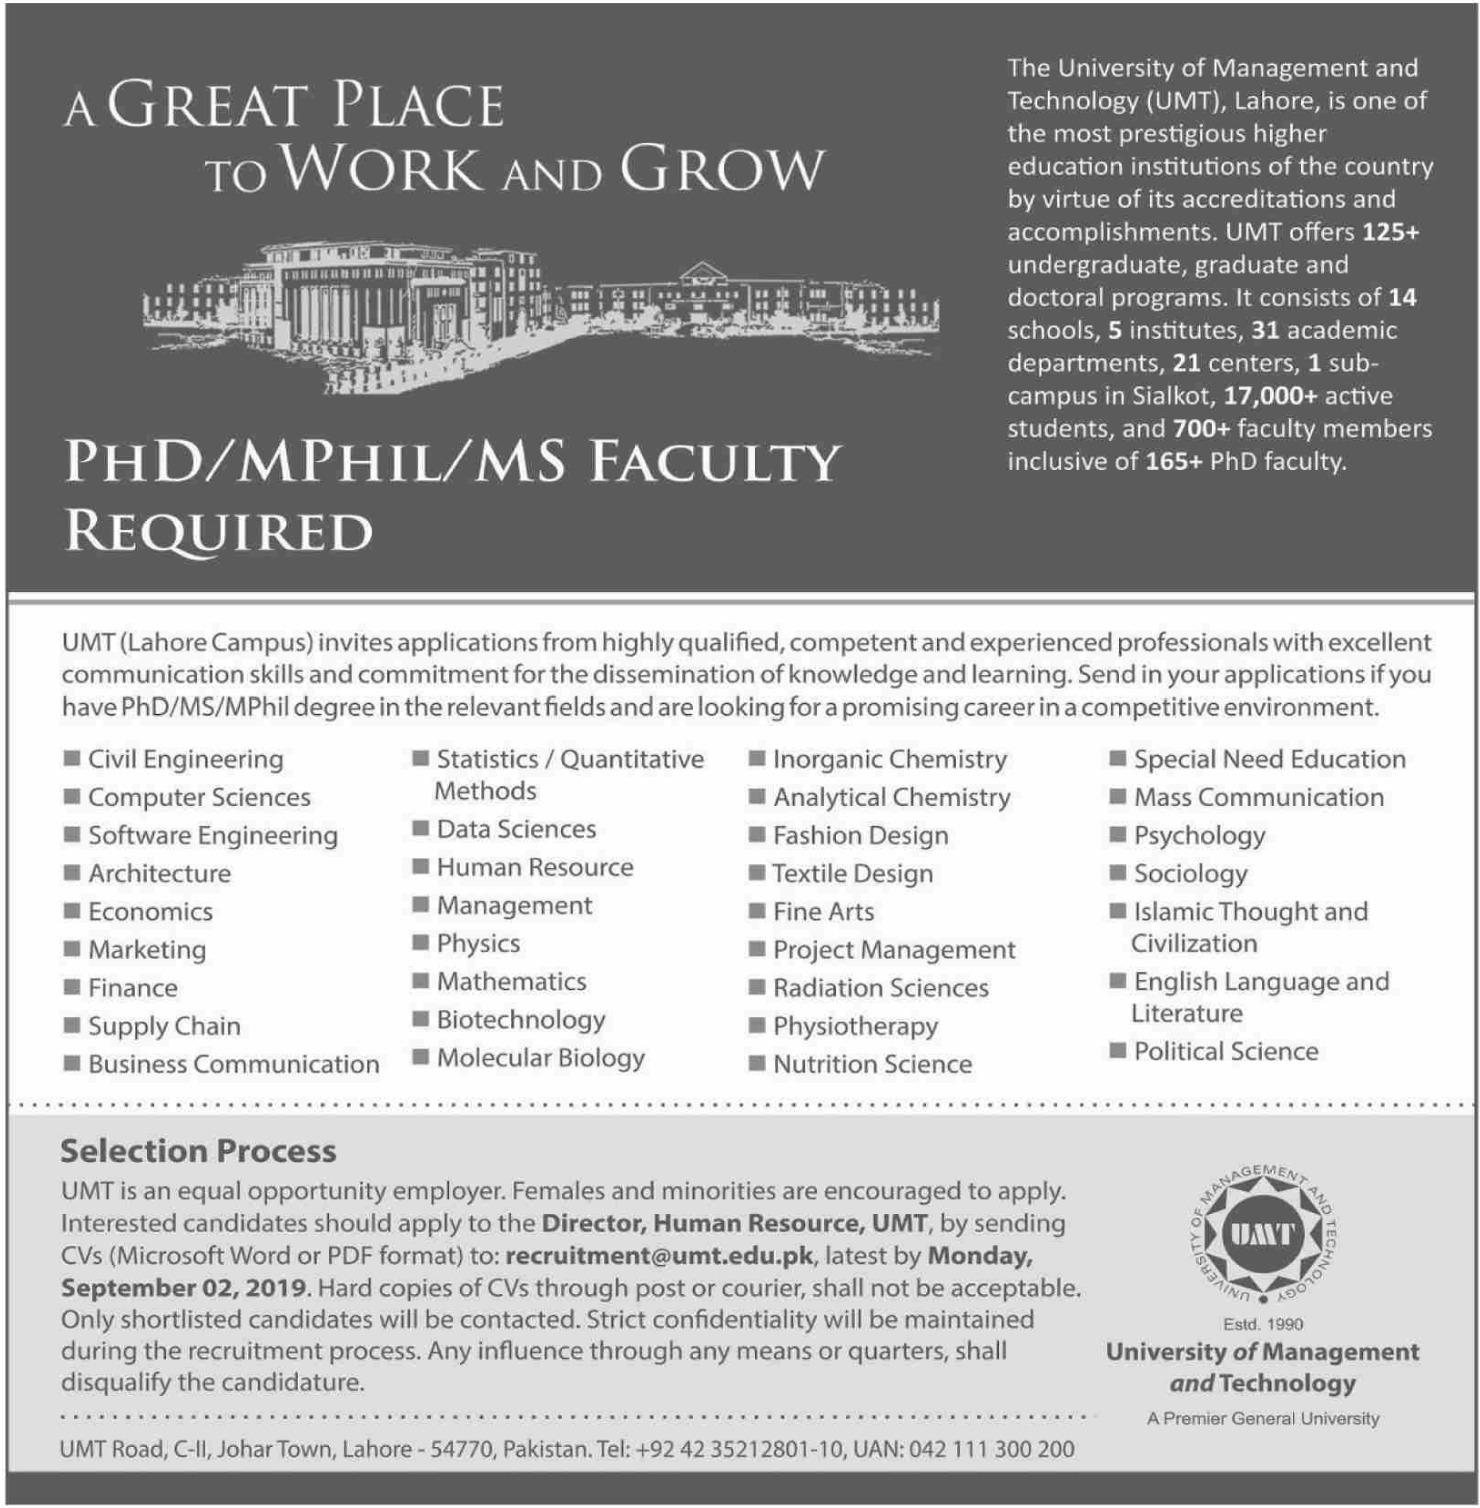 University of Management & Technology UMT Lahore Faculty Jobs 2019